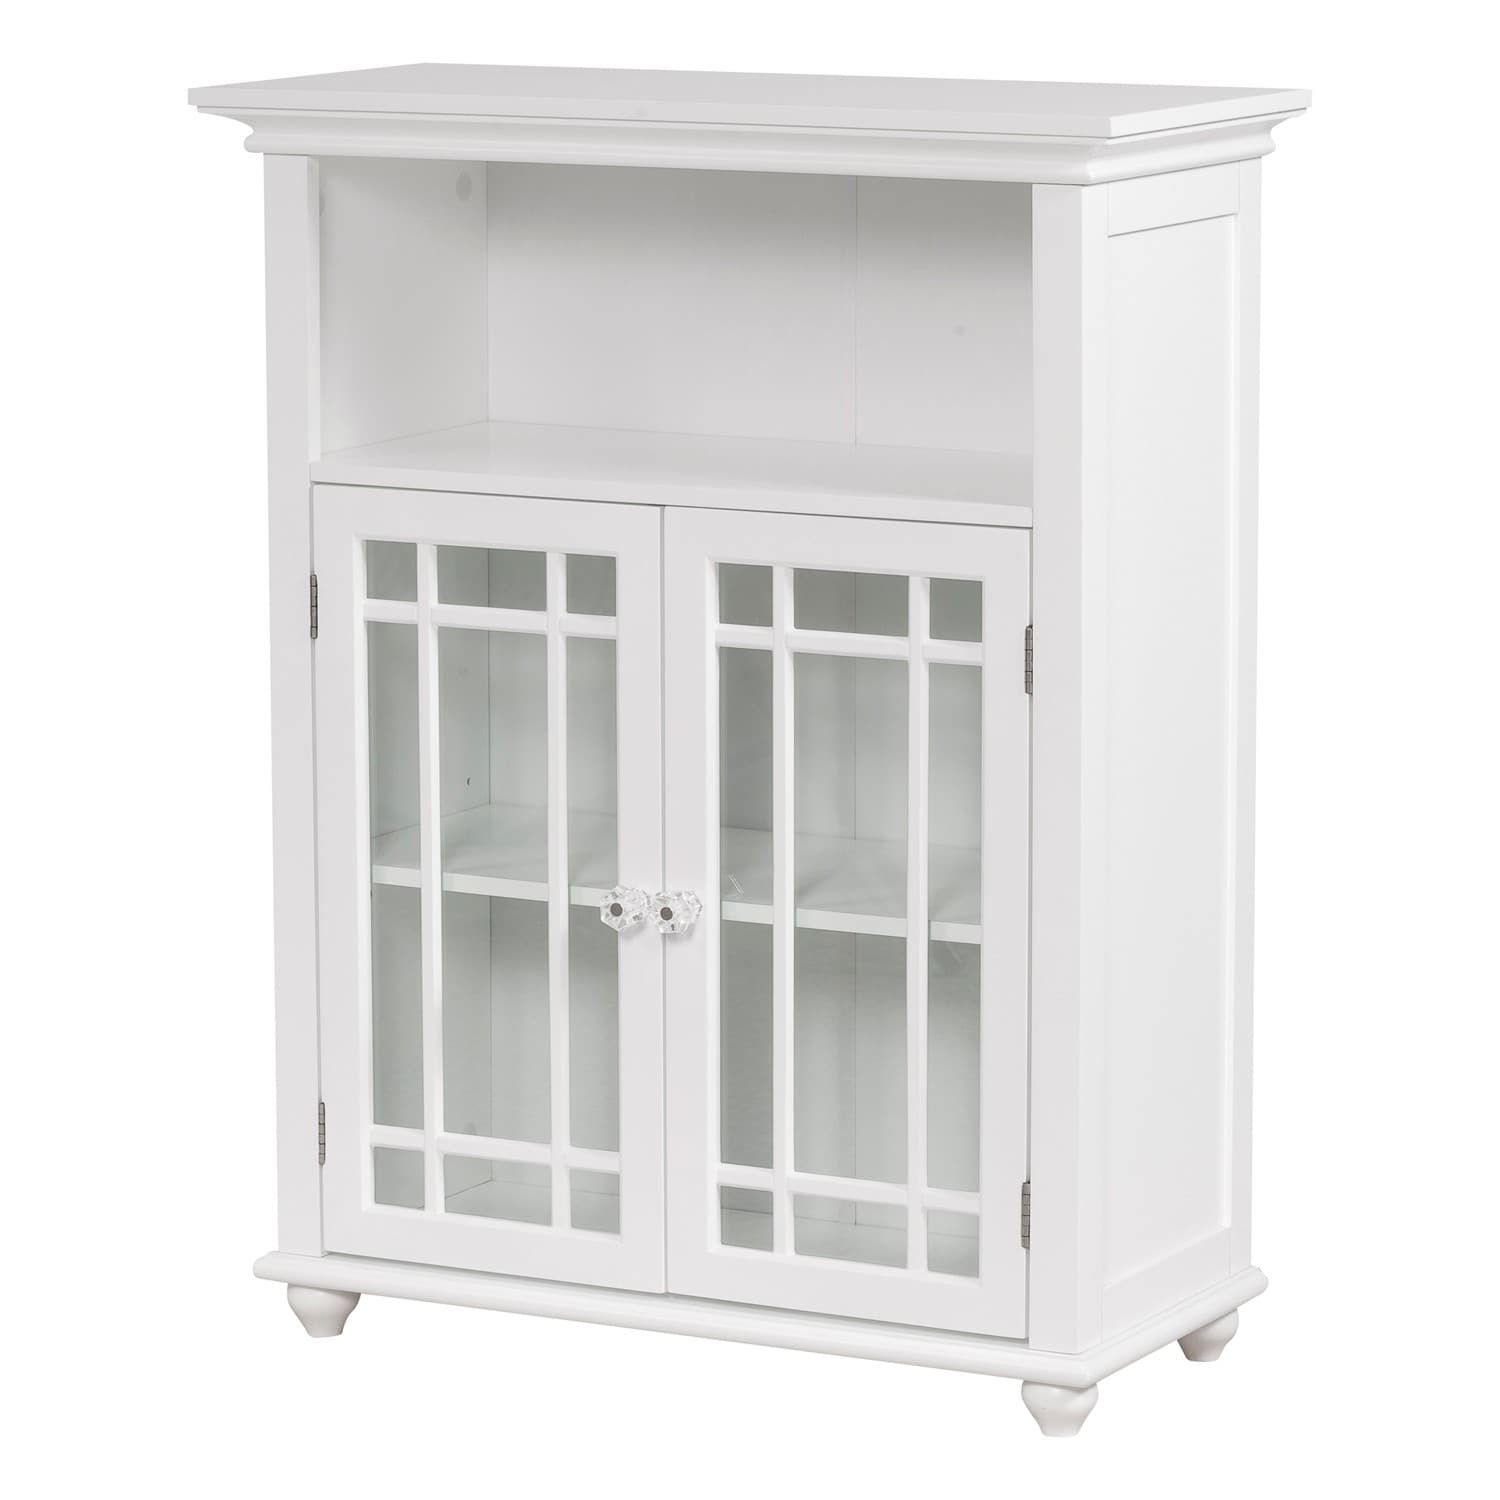 Stripe 2 Door Floor Cabinet By Elegant Home Fashions White Mdf Bathroom Floor Cabinets Glass Cabinet Doors Small White Bathrooms